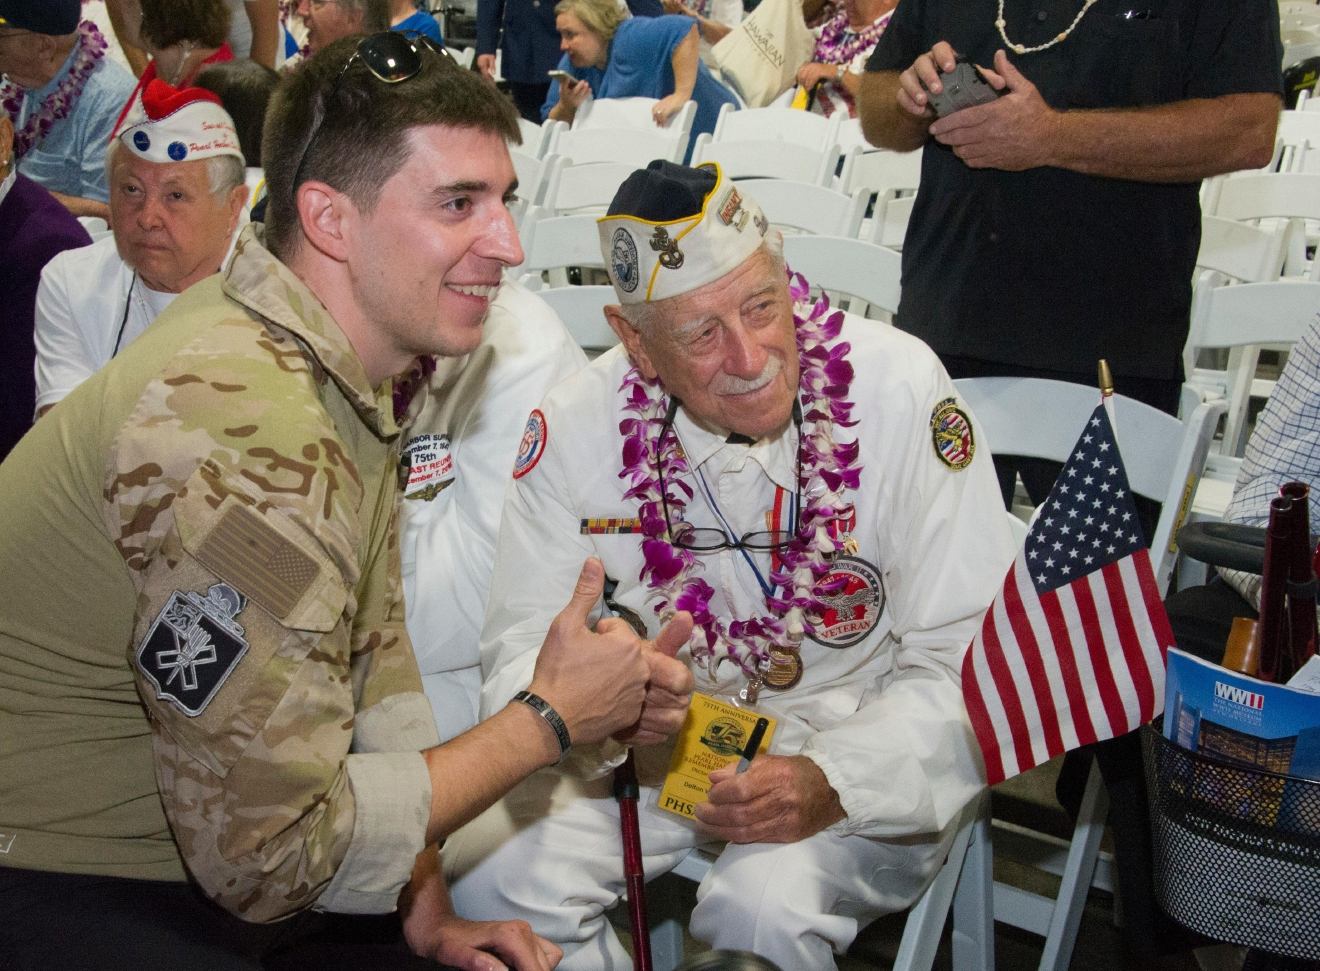 A man poses with a Pearl Harbor survivor on Wednesday, Dec. 7, 2016 at Kilo Peir in Honolulu. Survivors of the Japanese attack, dignitaries and ordinary citizens attended a ceremony at Kilo Pier to commemorate the 75th anniversary of the Japanese attack on the naval harbor.   (Craig T. Kojima/The Star-Advertiser via AP, Pool)